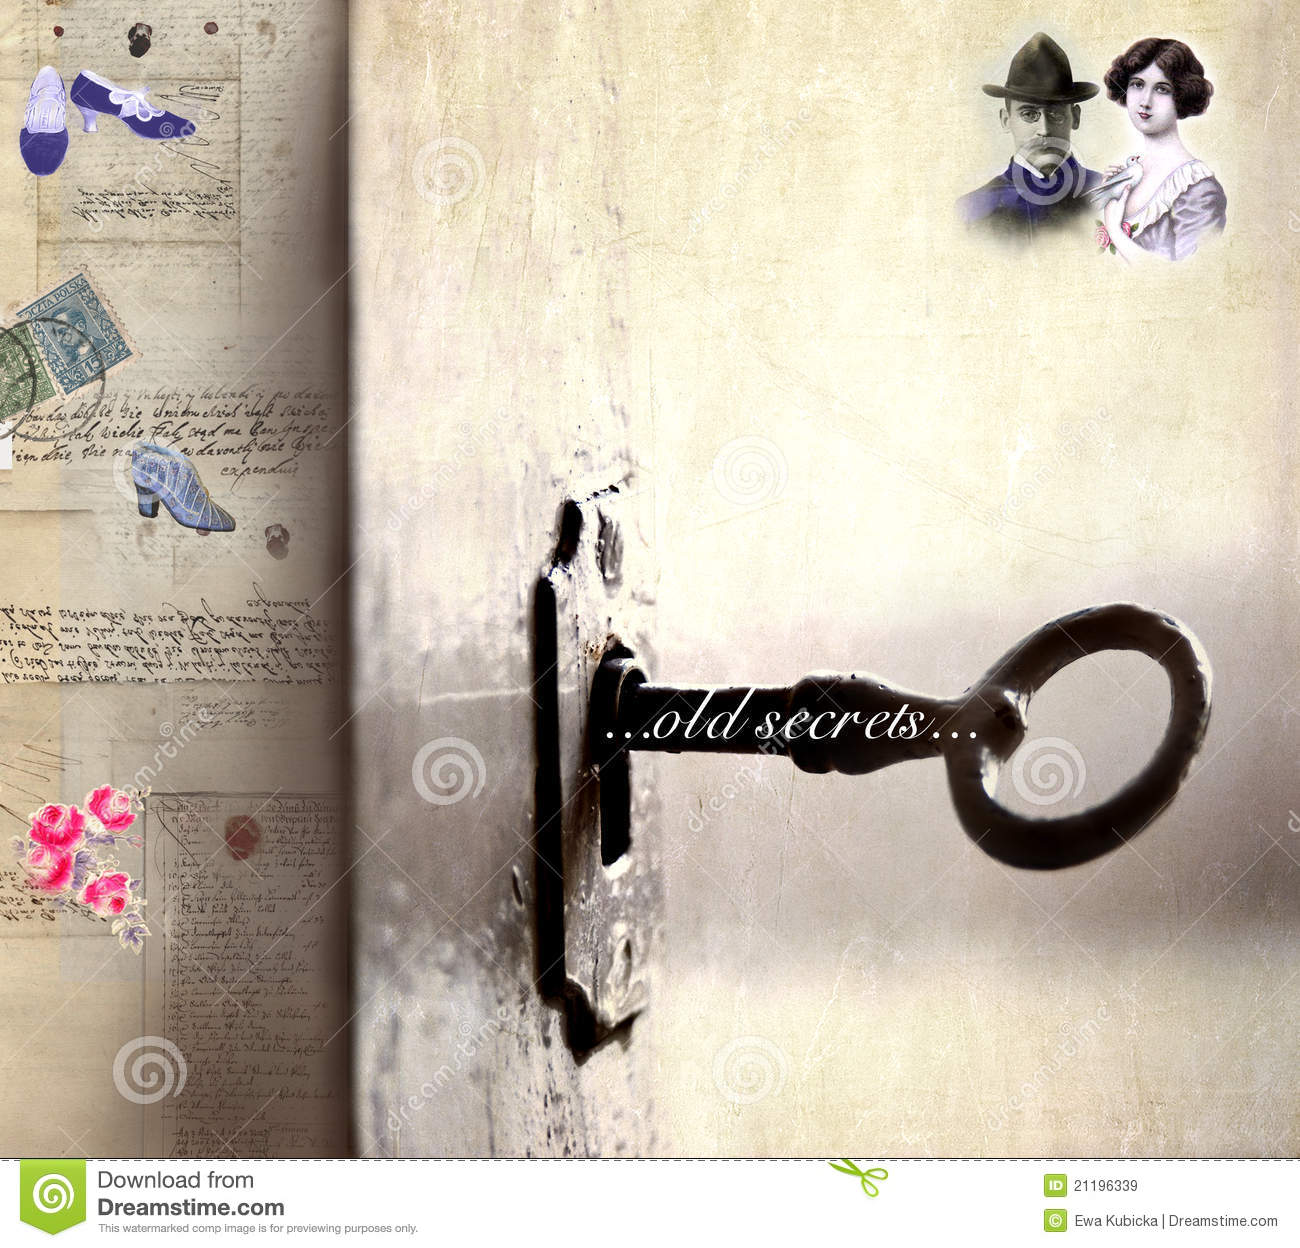 Old secrets under lock and key